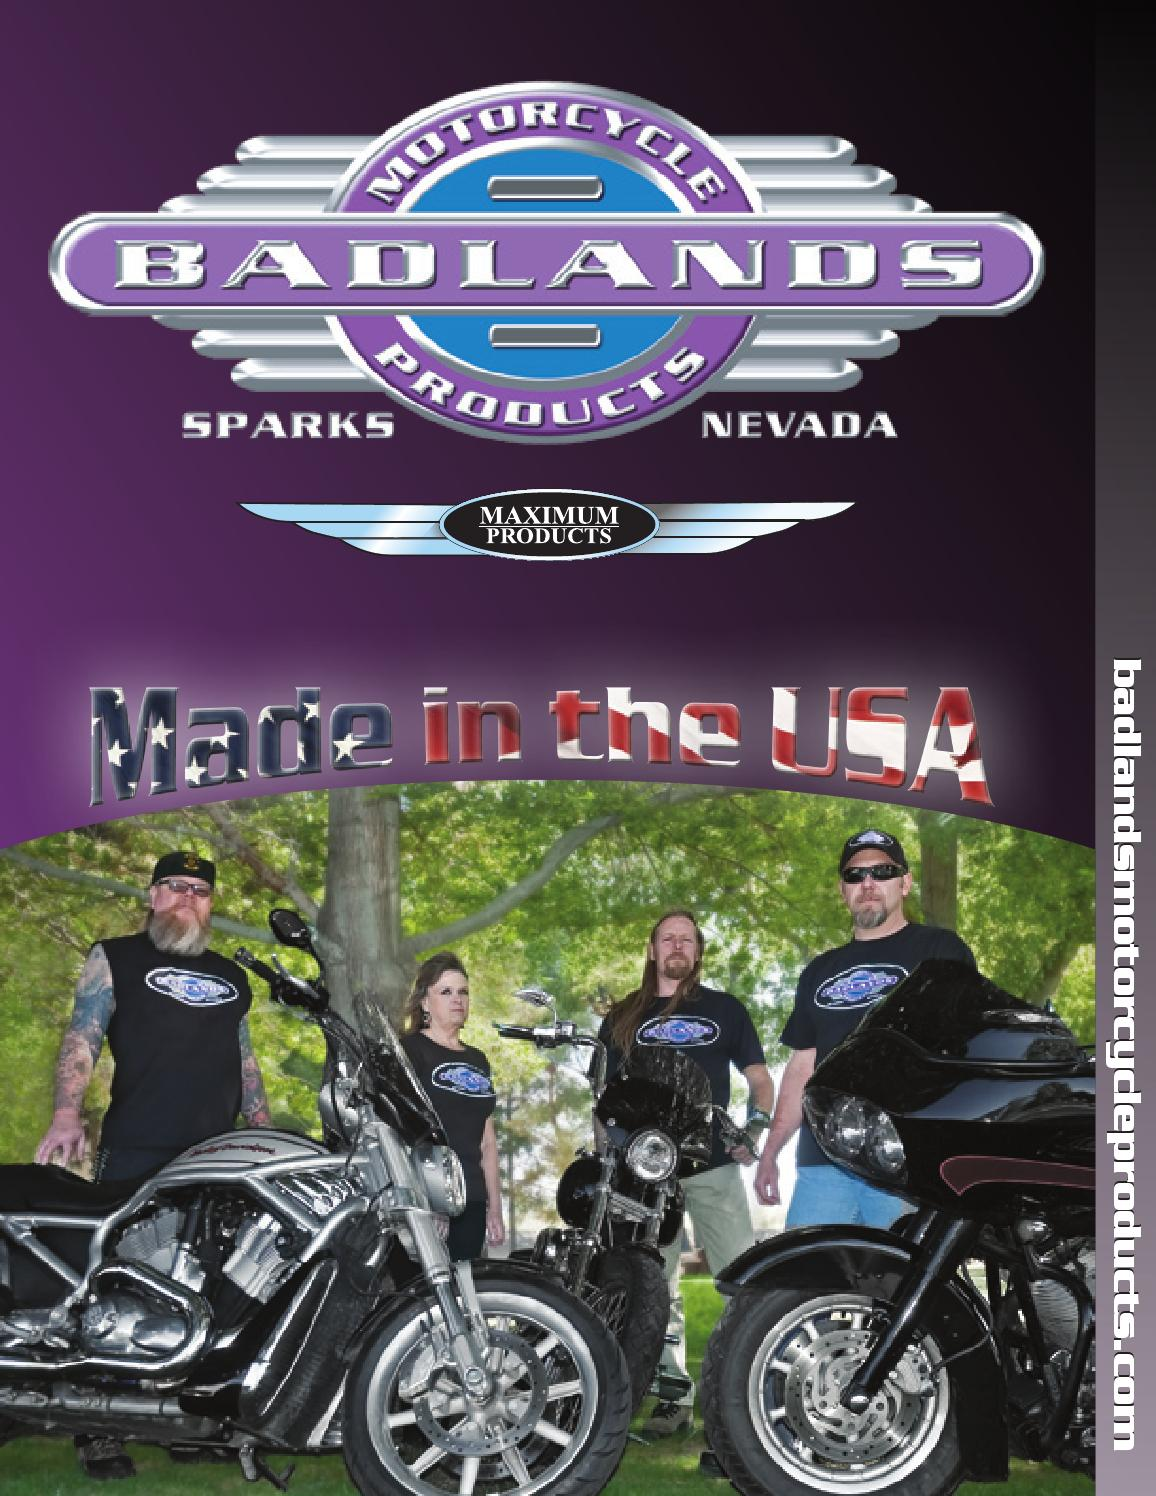 hight resolution of 2009 badlands motorcycle products catalog by pitbulls motorcycles issuu